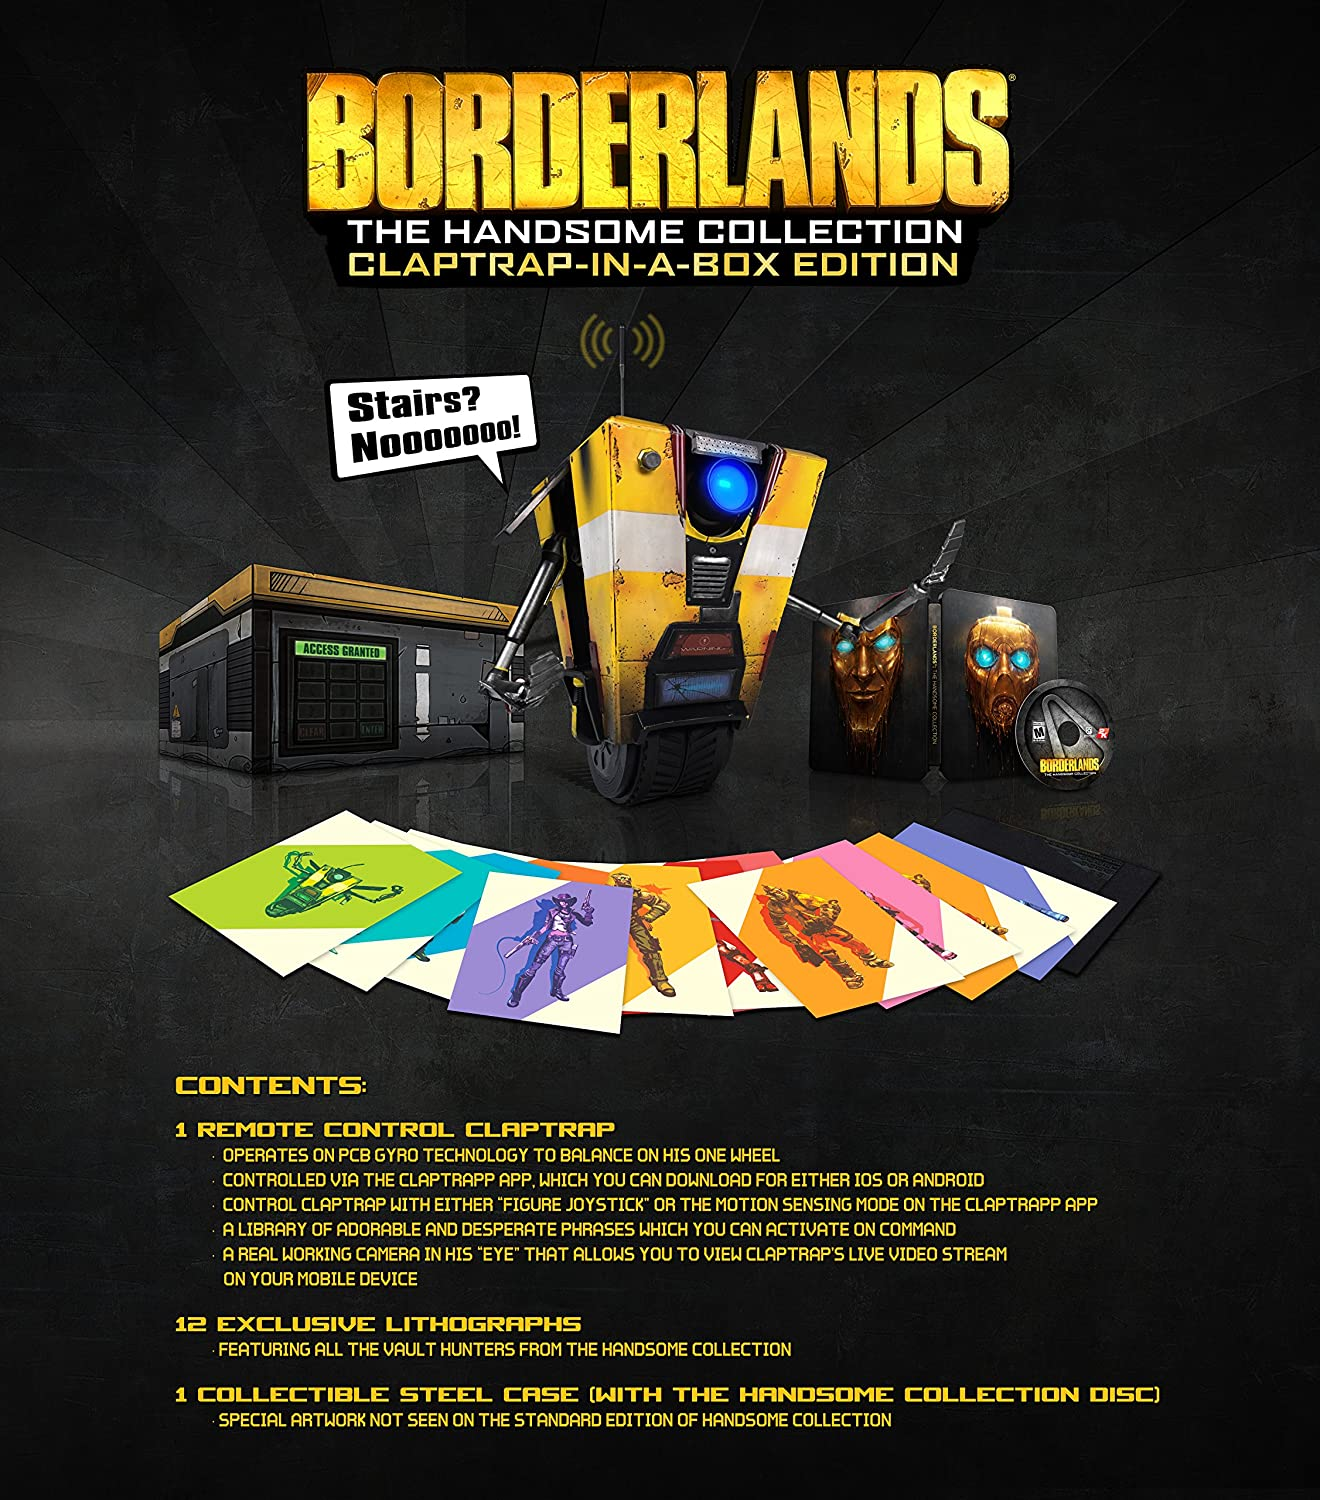 Amazon com: Borderlands: The Handsome Collection- Claptrap-in-a-Box